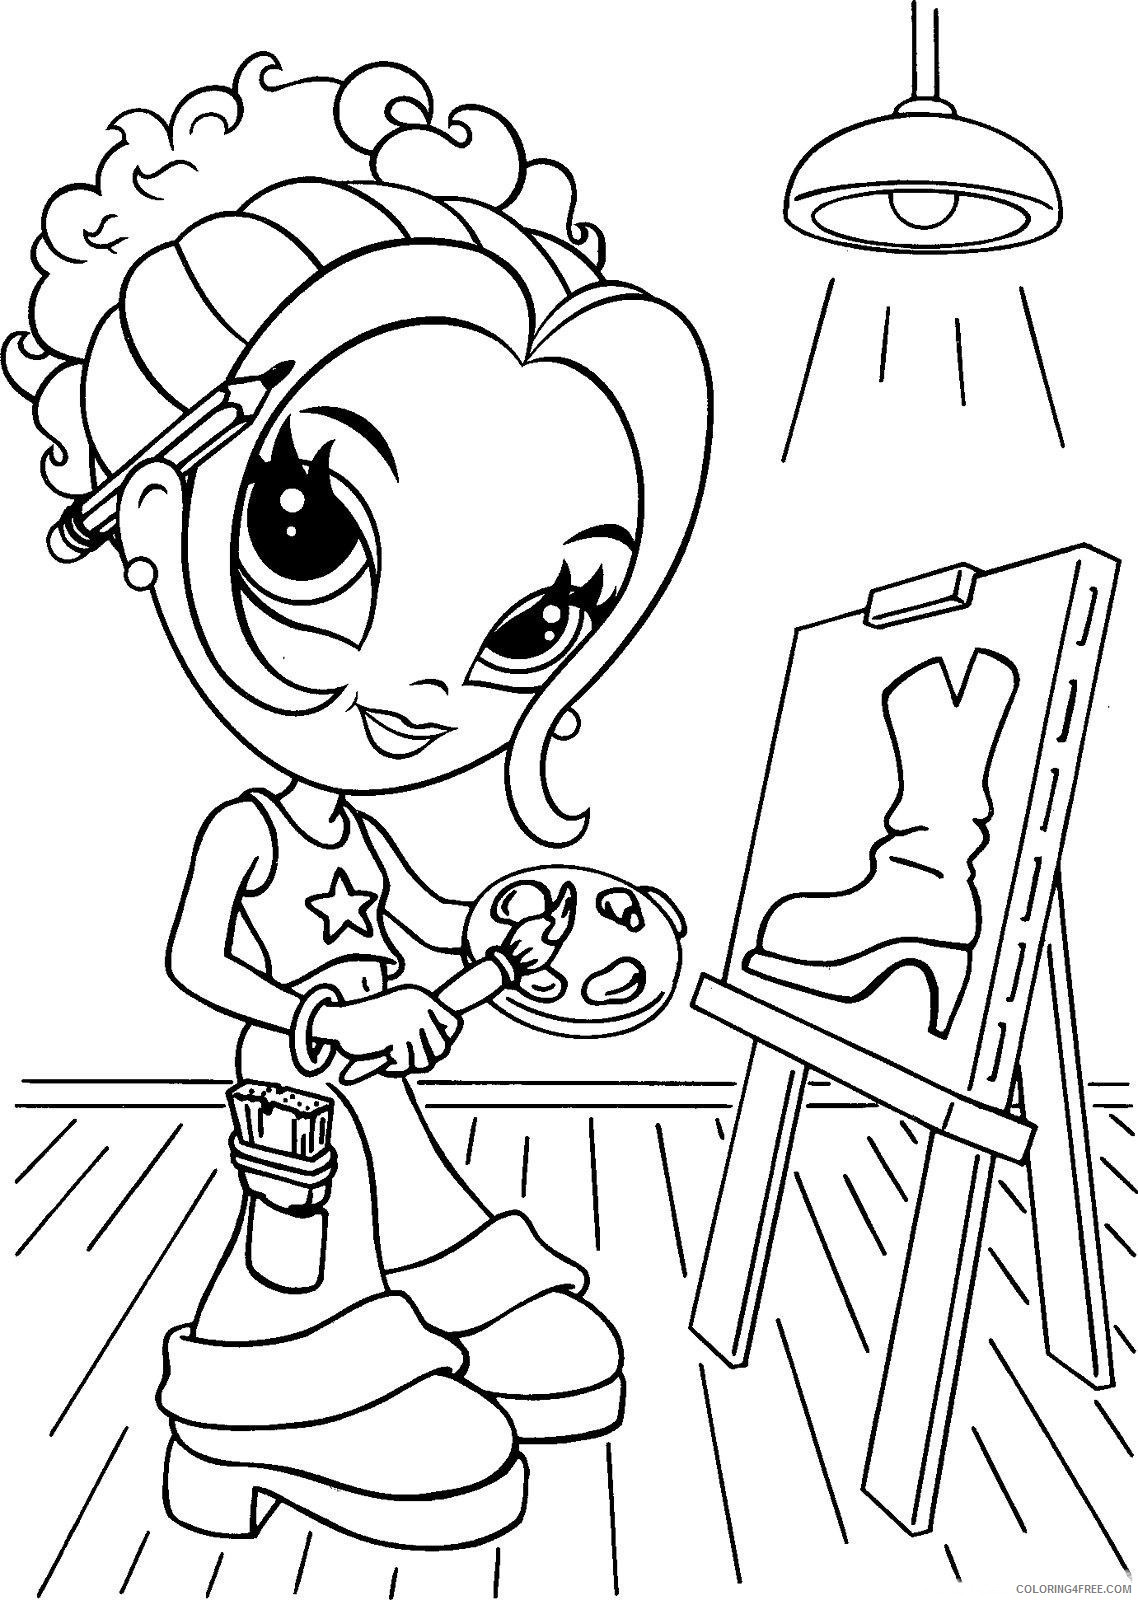 lisa frank coloring pages girl painting Coloring4free